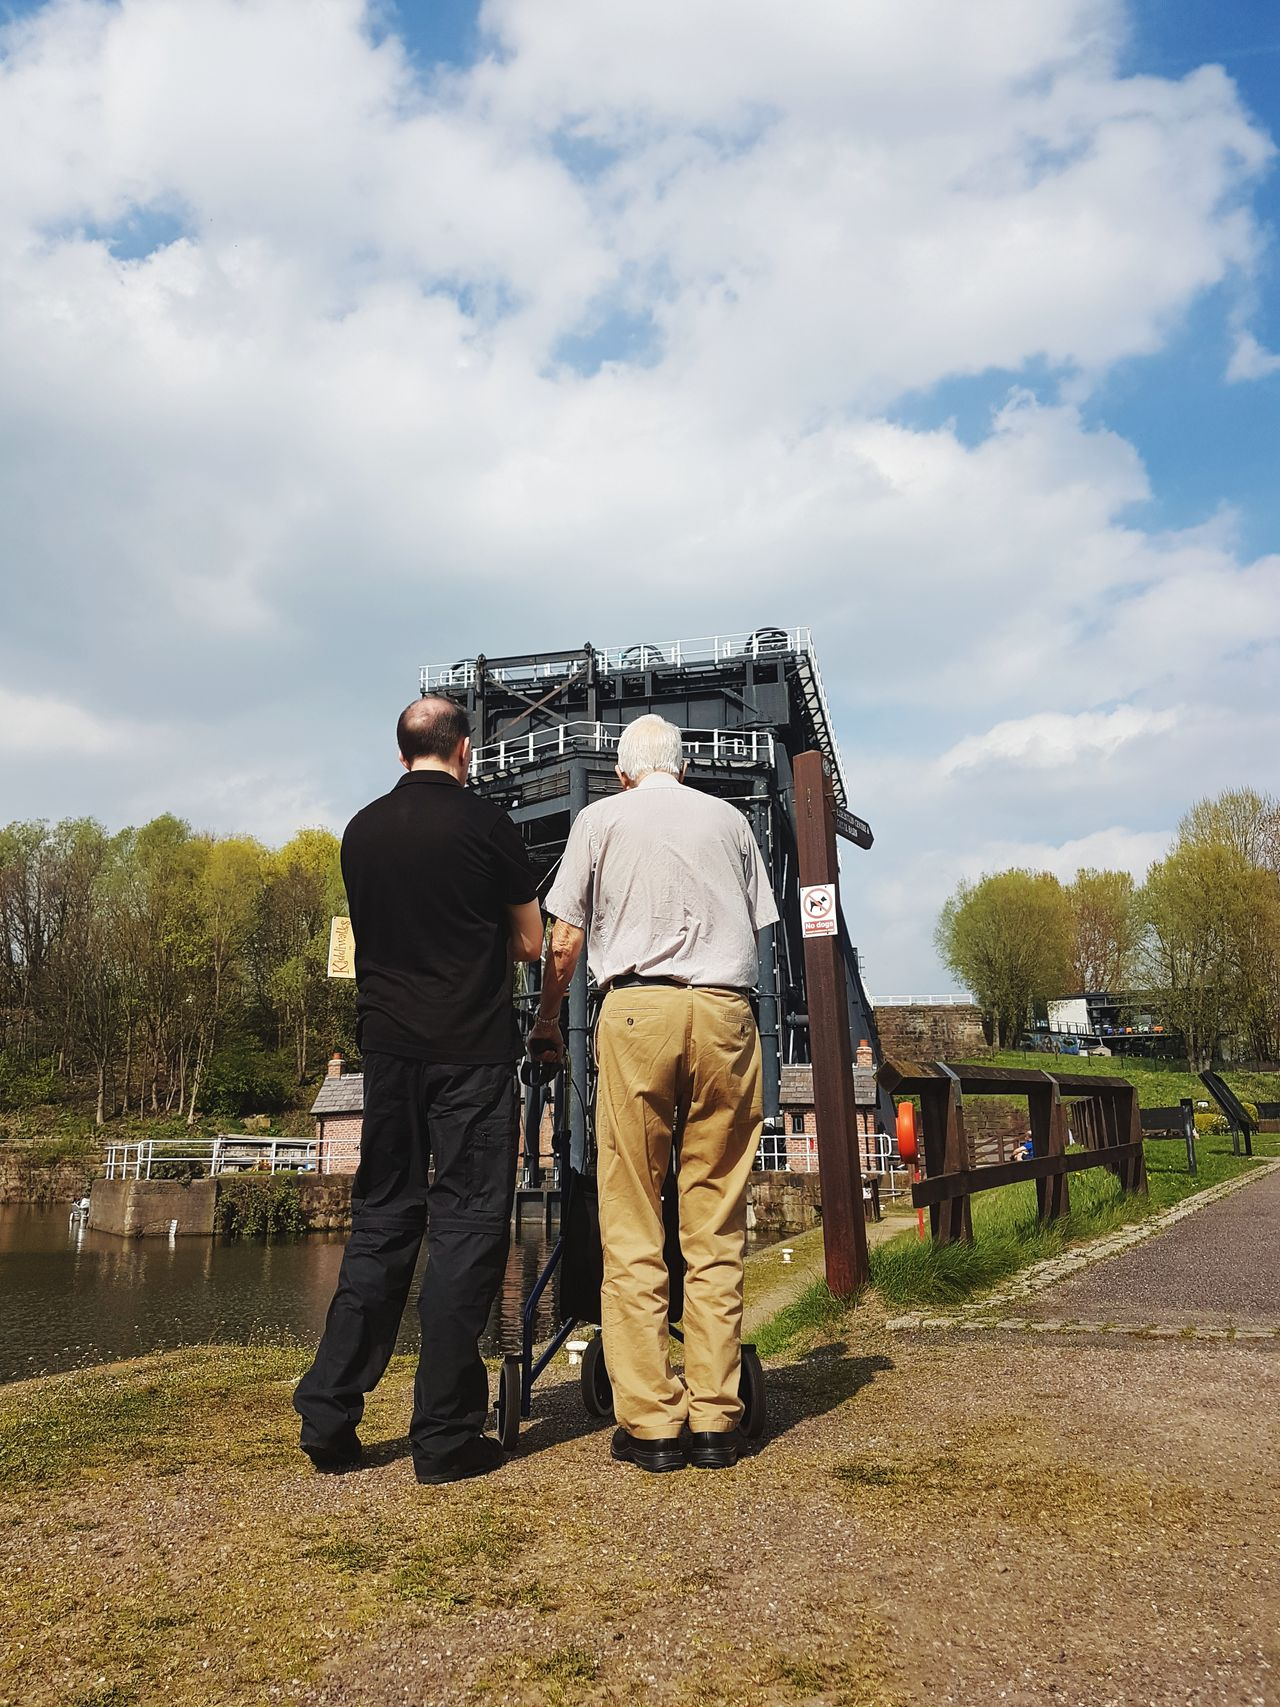 Father & Son Father And Son Rear View Time Together Andertonboatlift Low Angle View Human Body Part Technology Industrial Area Full Length Only Men Senior Adult Men People Blue Water Blue Sky Clouds In The Sky